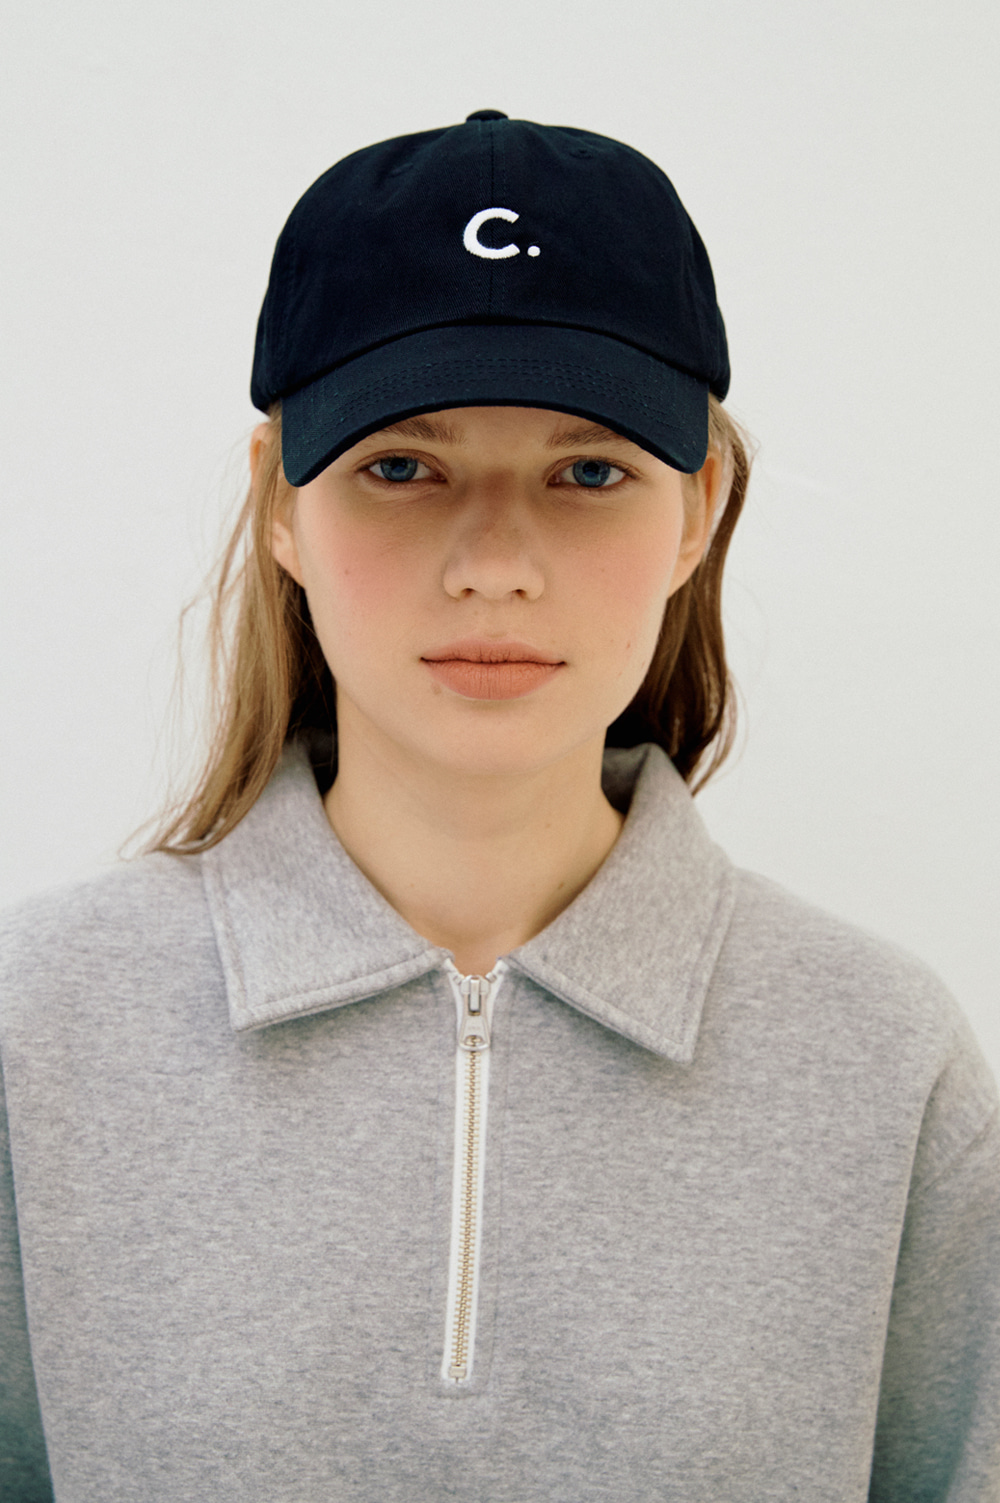 clove - [5/17(월) 예약배송] Basic Fit Ball Cap (Black)